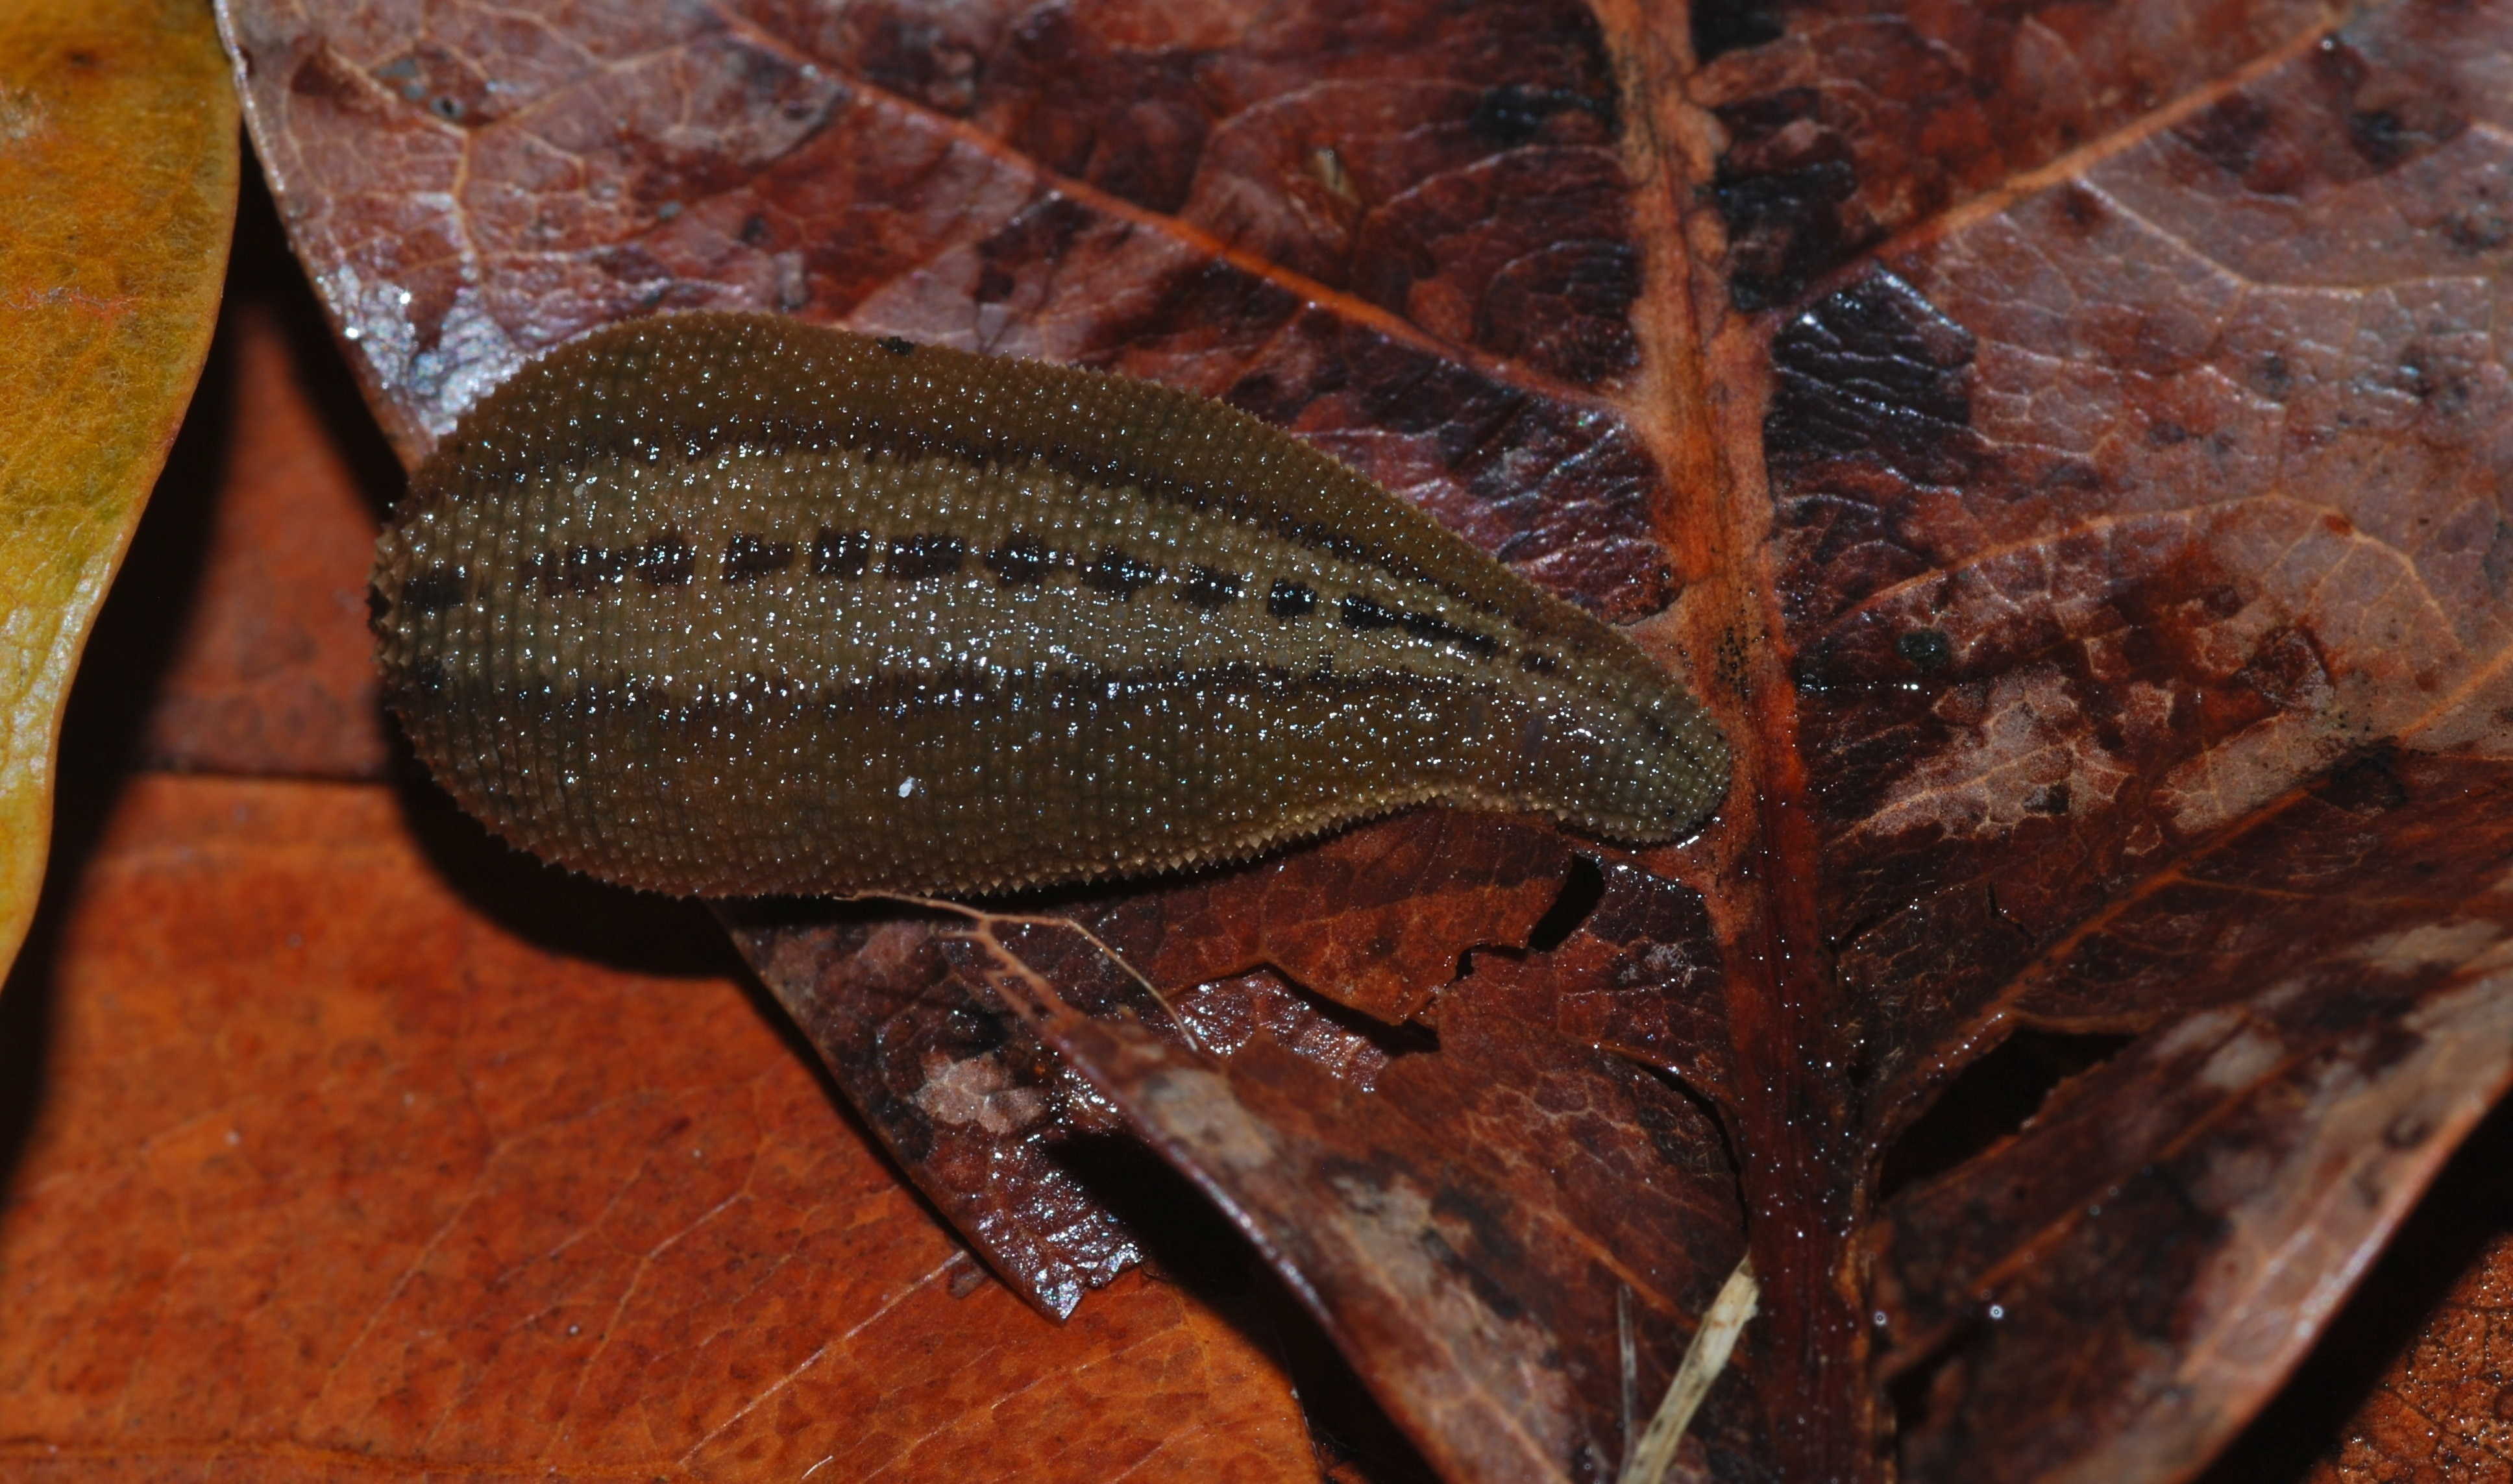 Image of Brown Leech